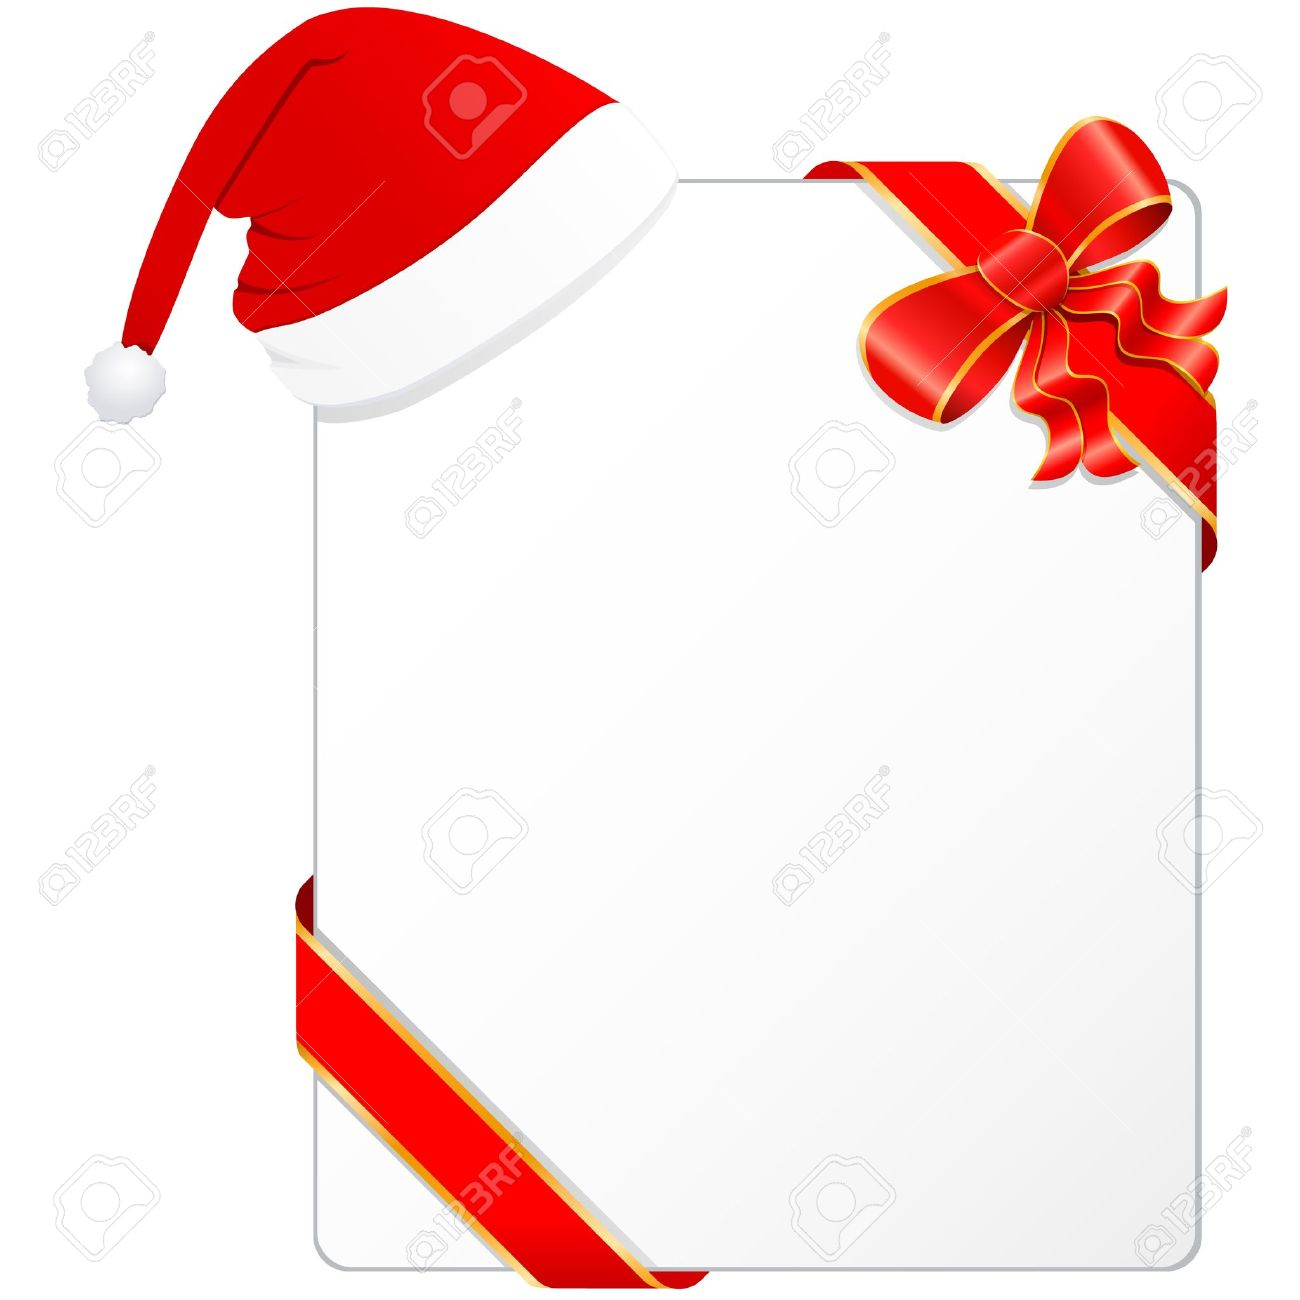 Christmas Wish List With Santa S Hat Royalty Free Cliparts Vectors And Stock Illustration Image 15704131